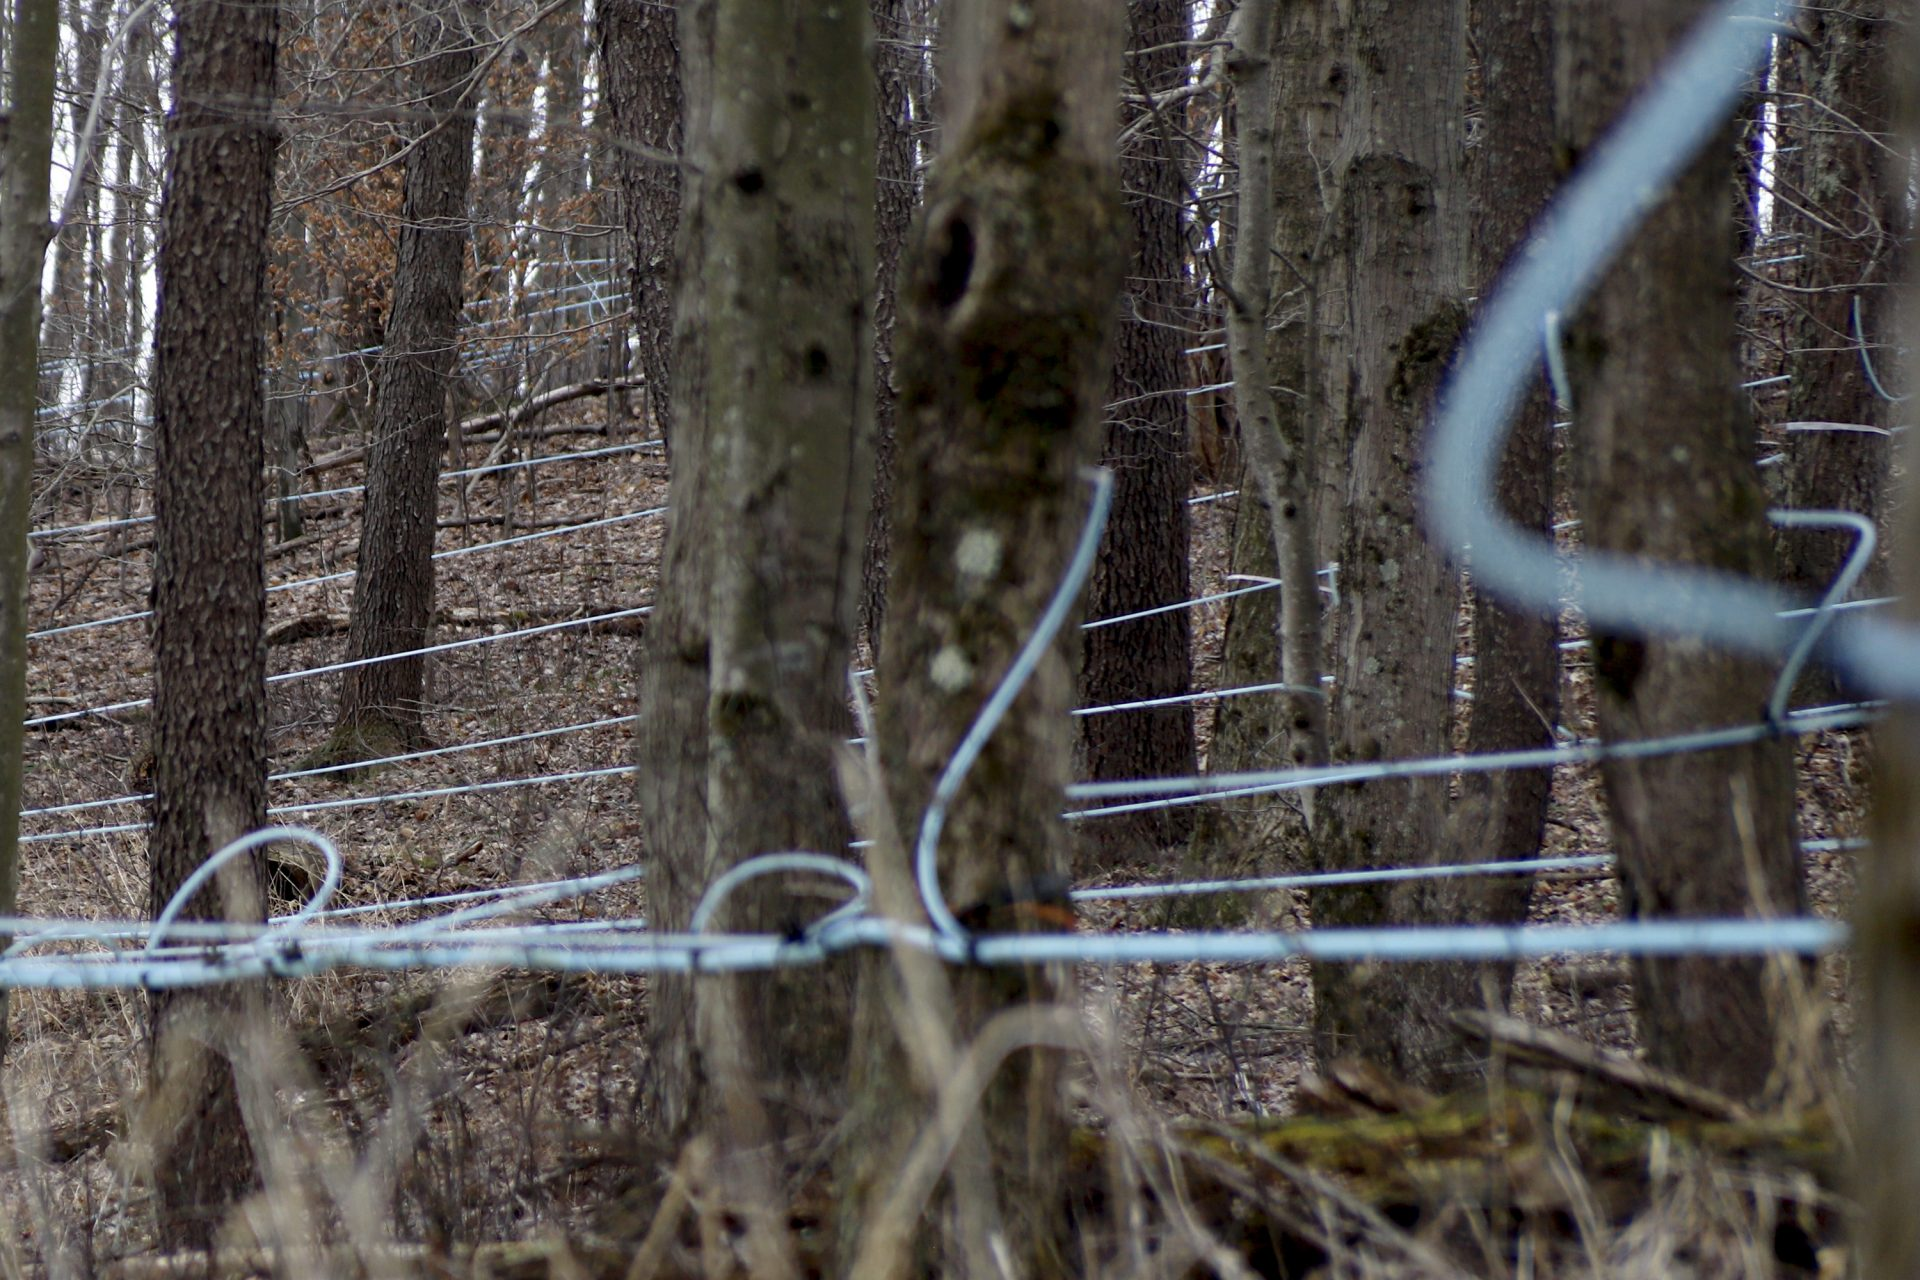 Some of the network of tubing that connects to over 3500 maple trees collecting sap is visible in the woods at the Triple J Farms before it gets to the vessels in their wet/dry vacuum system, Saturday, March 14, 2020, in Titusville, Pa.